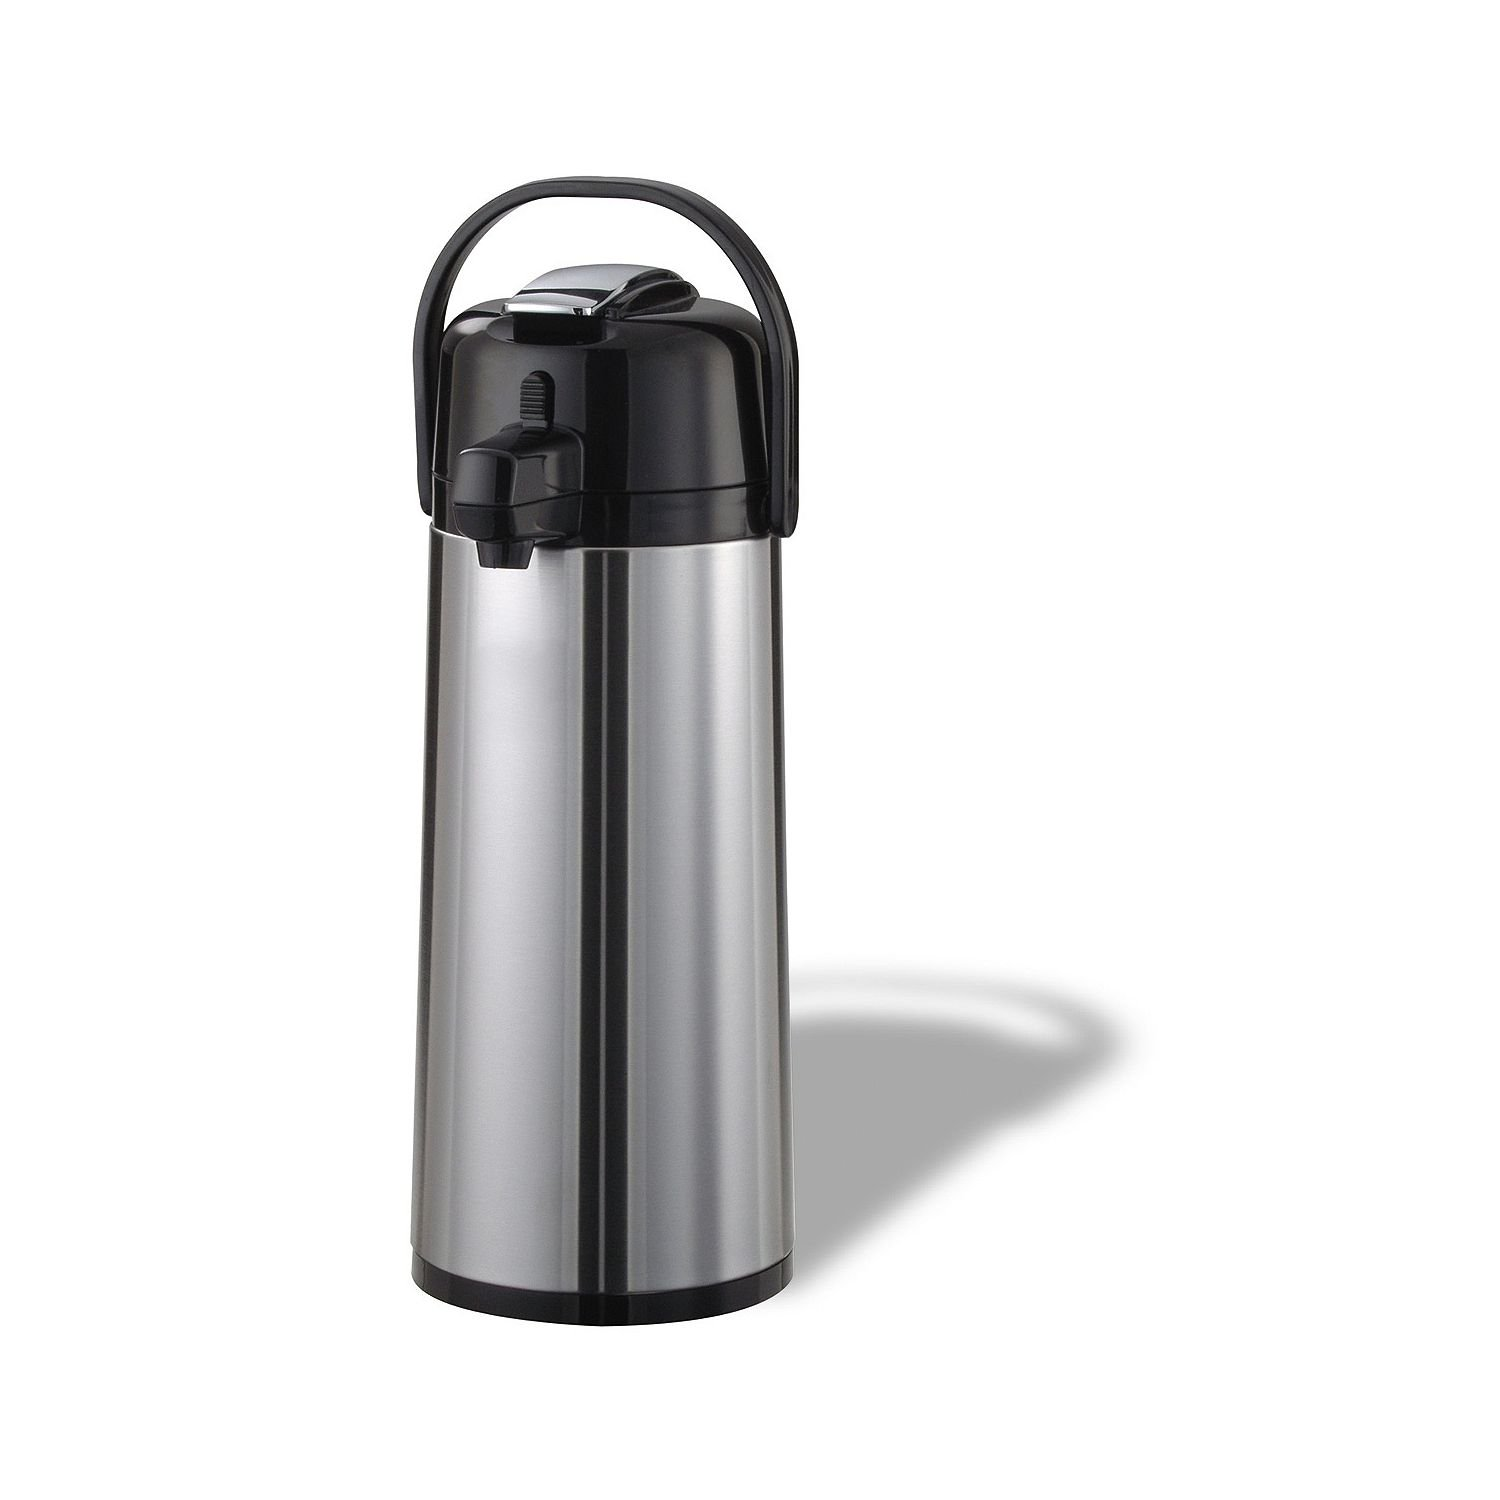 Service Ideas ECAL19S Eco-Air Lever Lid Airpot, Glass Vacuum, 1.9 Liter (64.2 oz.), Brushed Stainless/Black si-ecal19s